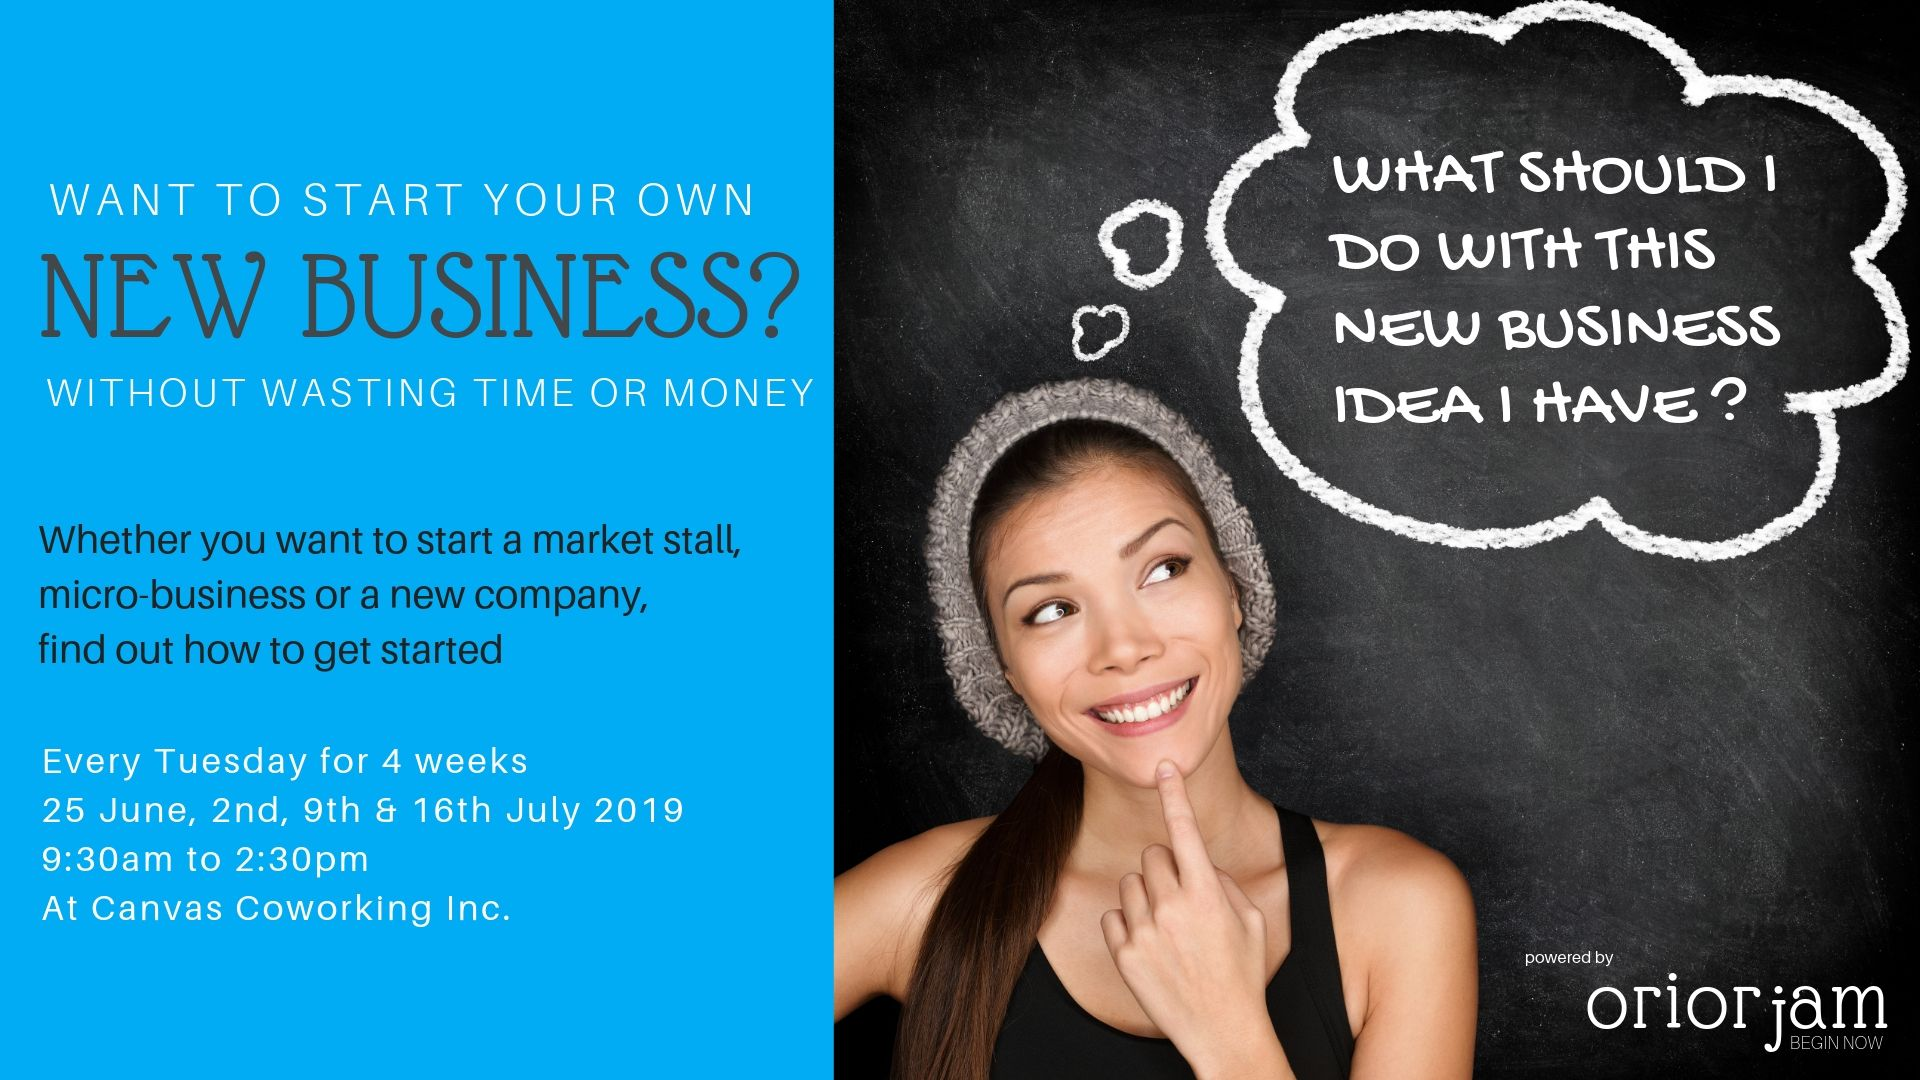 Start Your Own New Business